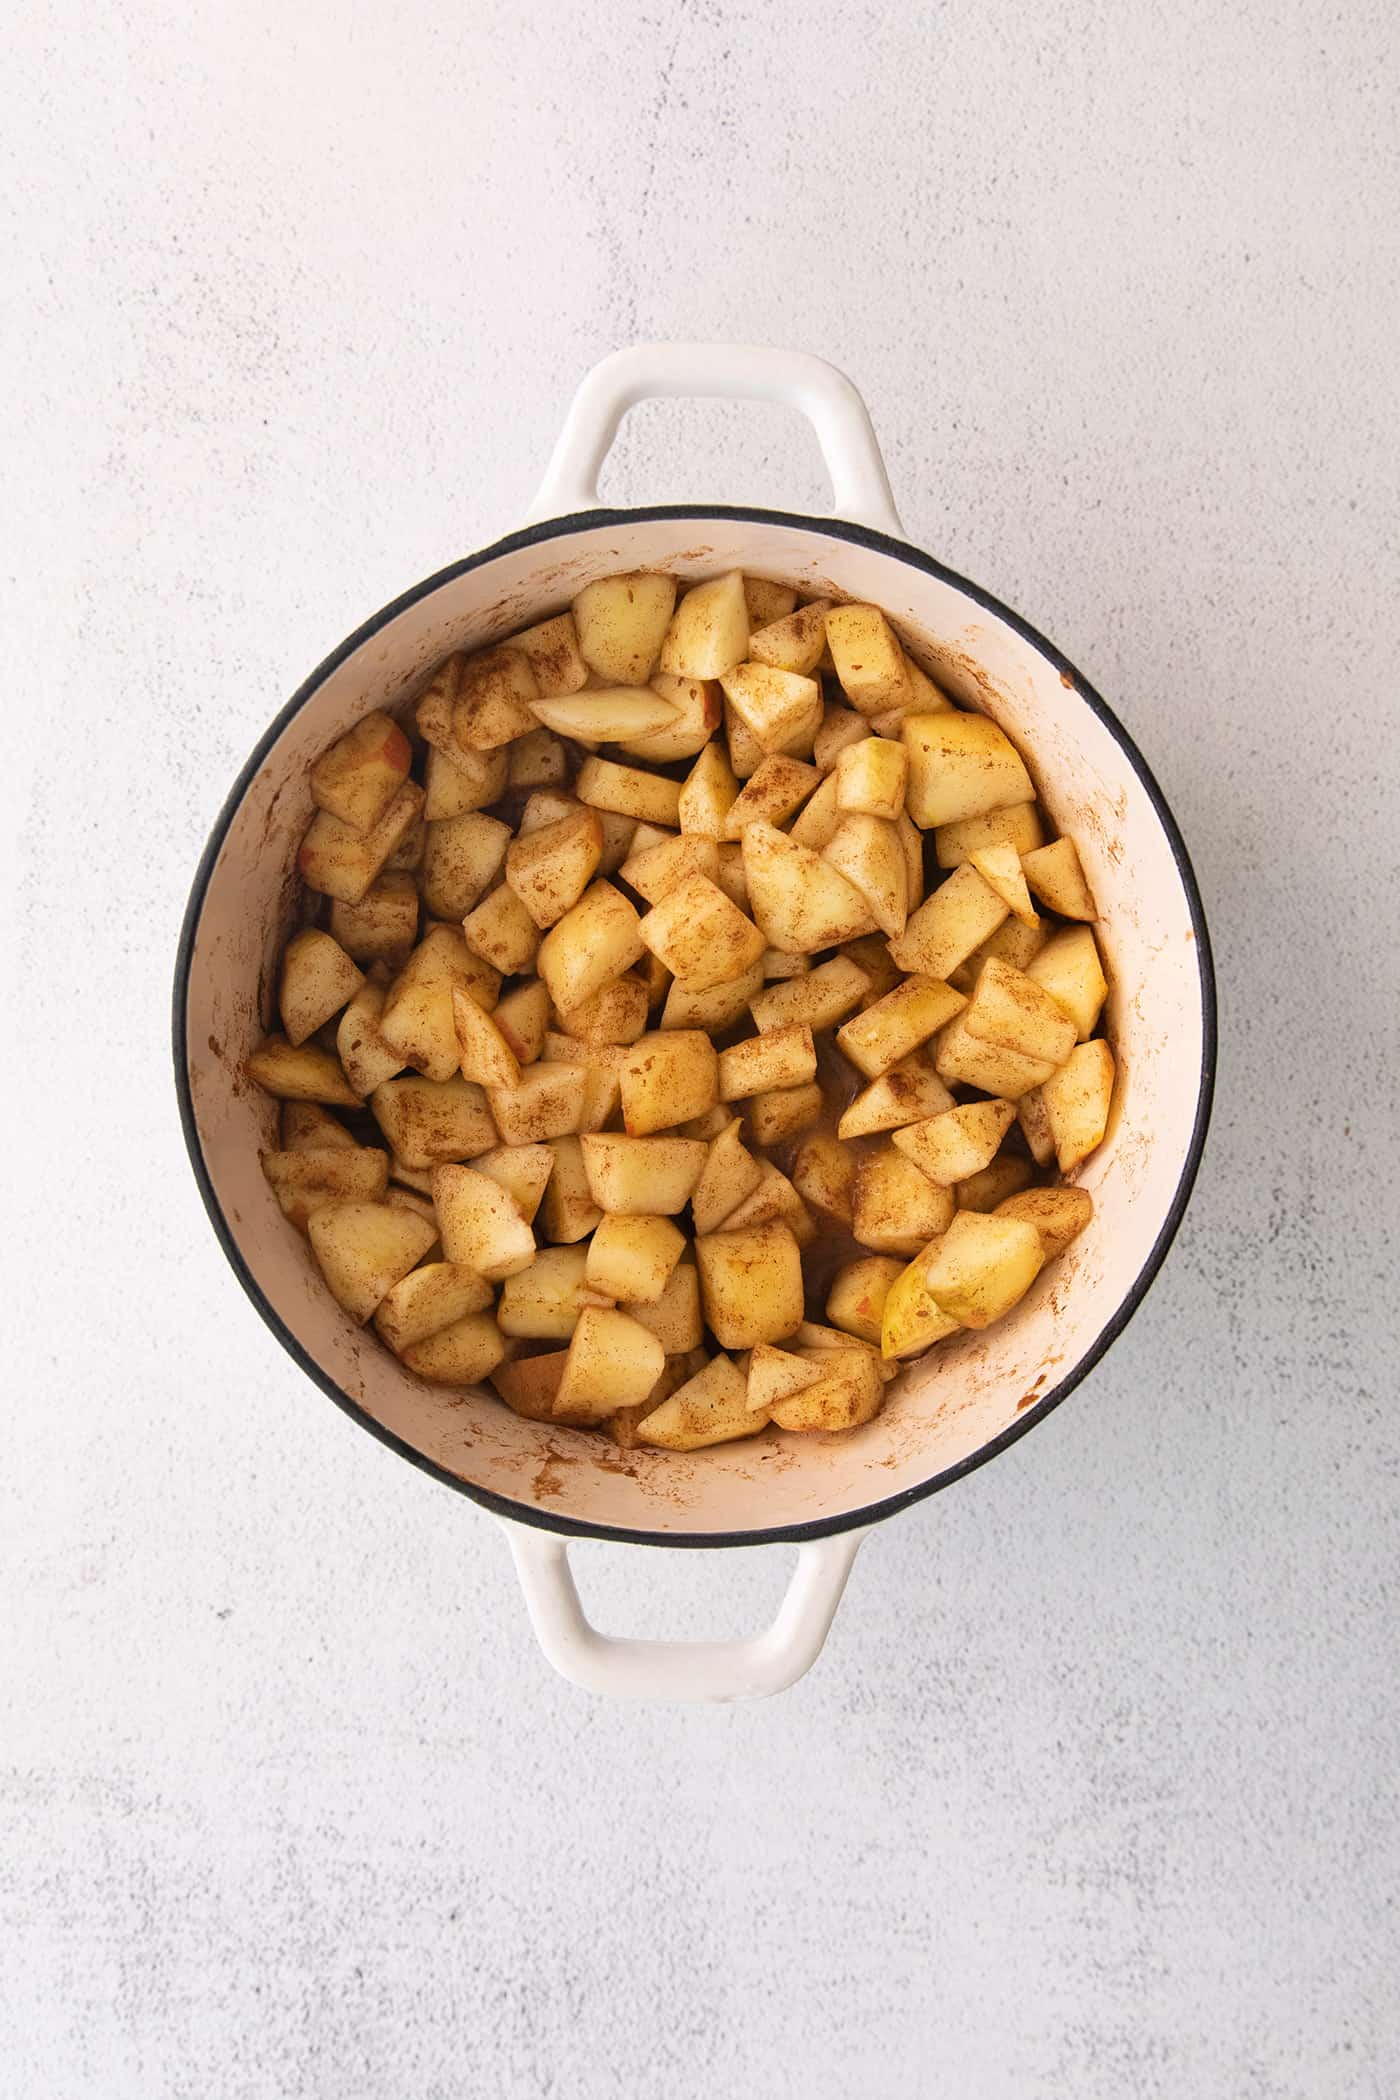 chopped apples with cinnamon in a large white pot